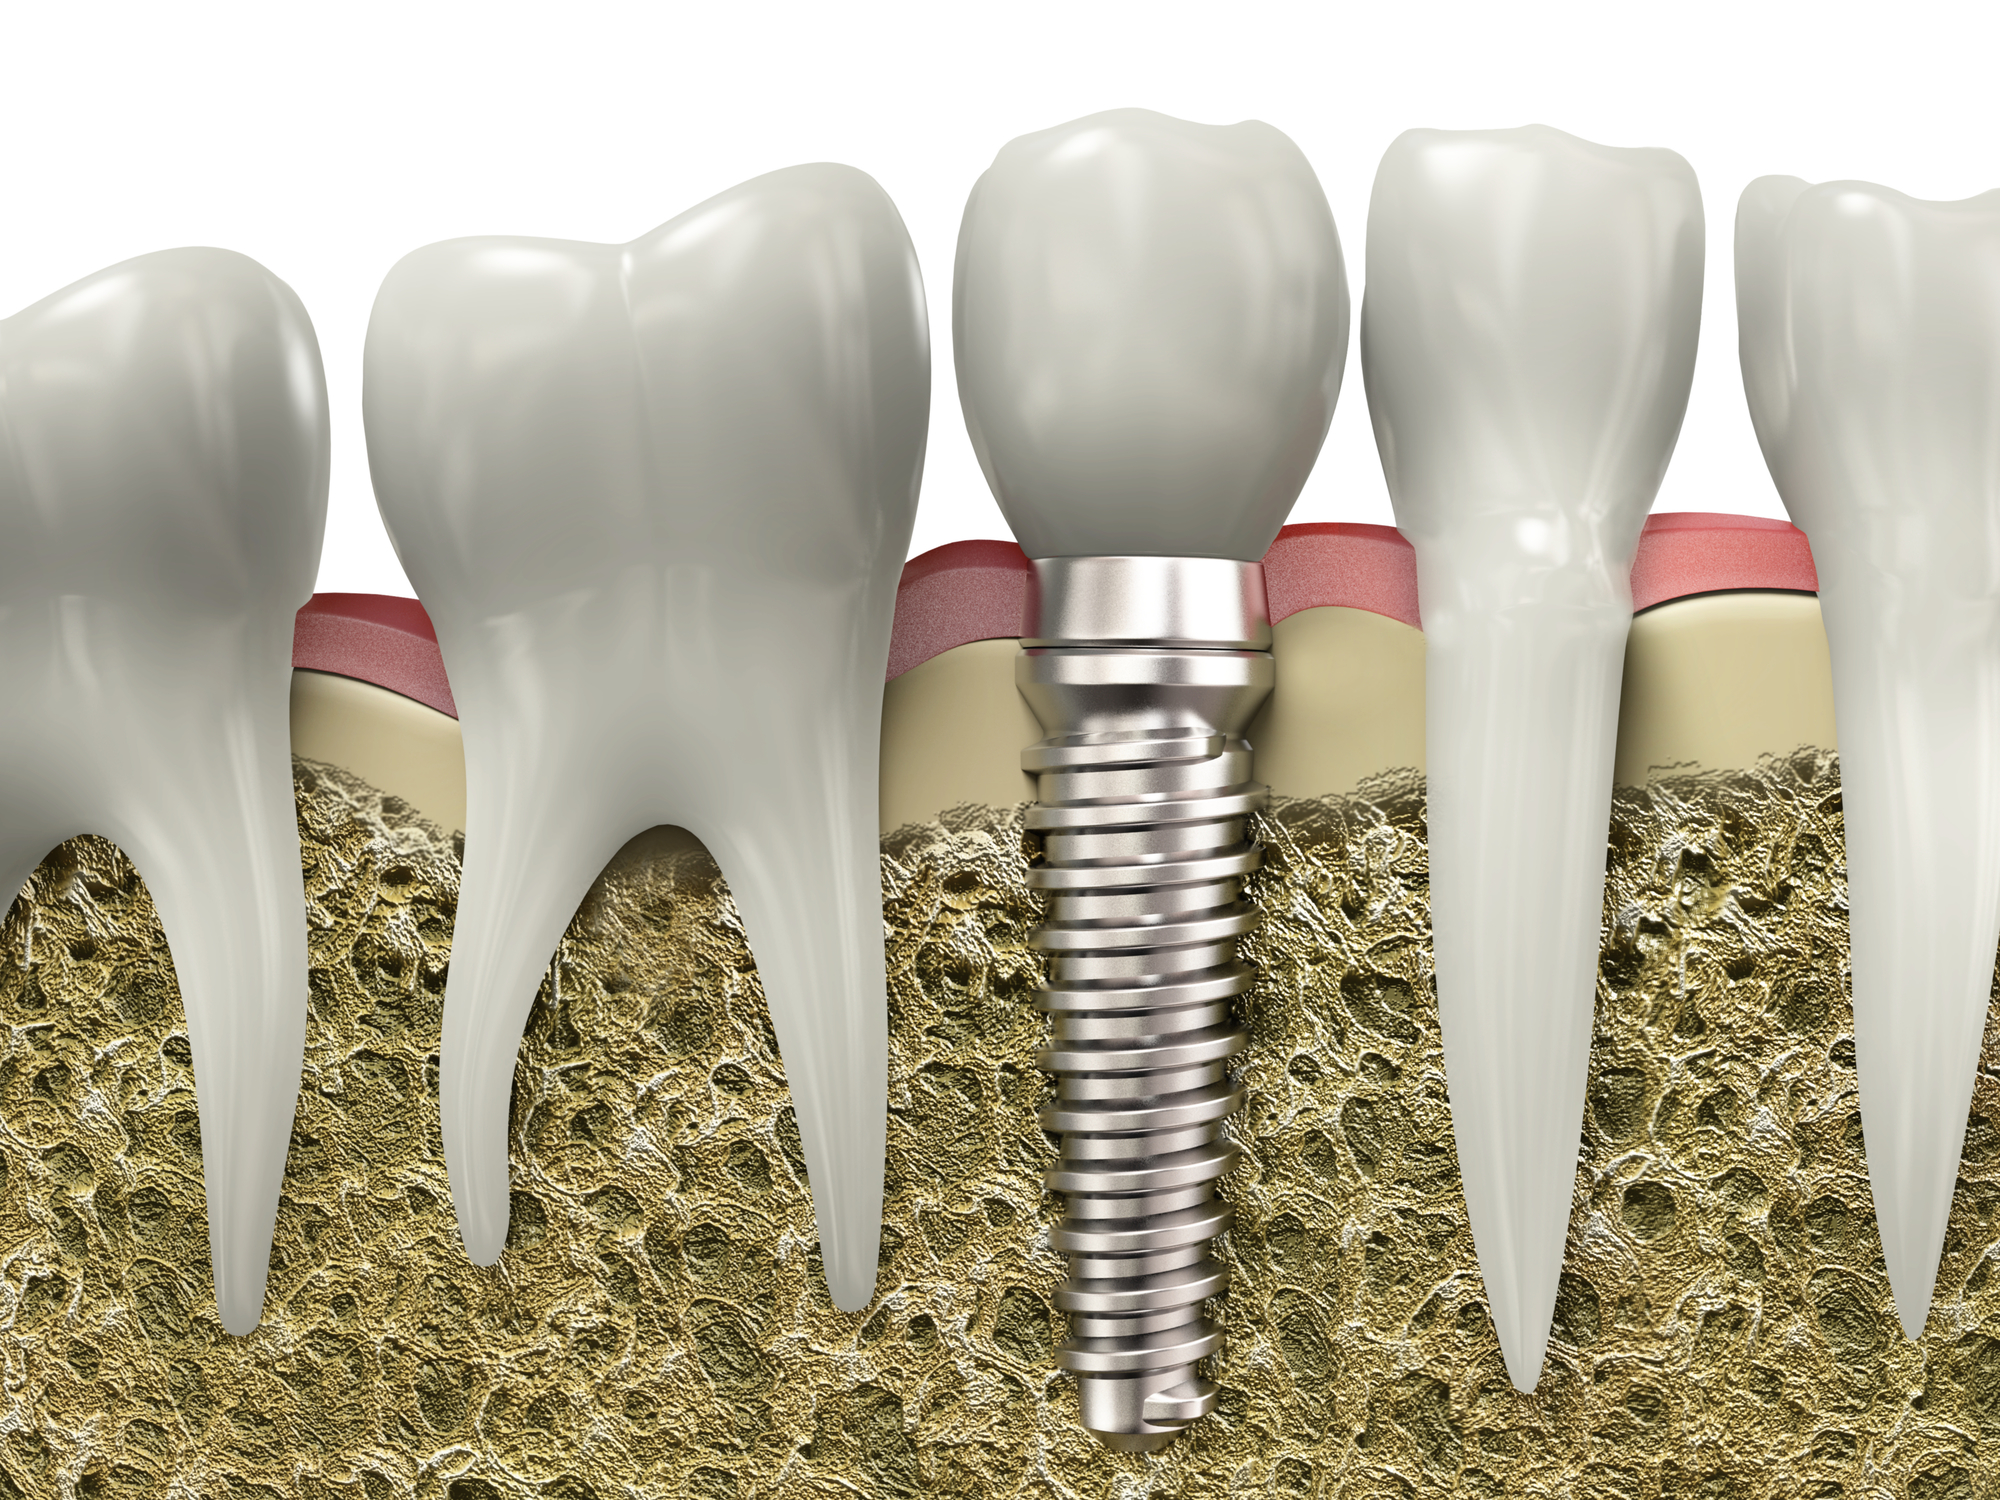 Why should I choose dental implants in Boca Raton to restore my smile?